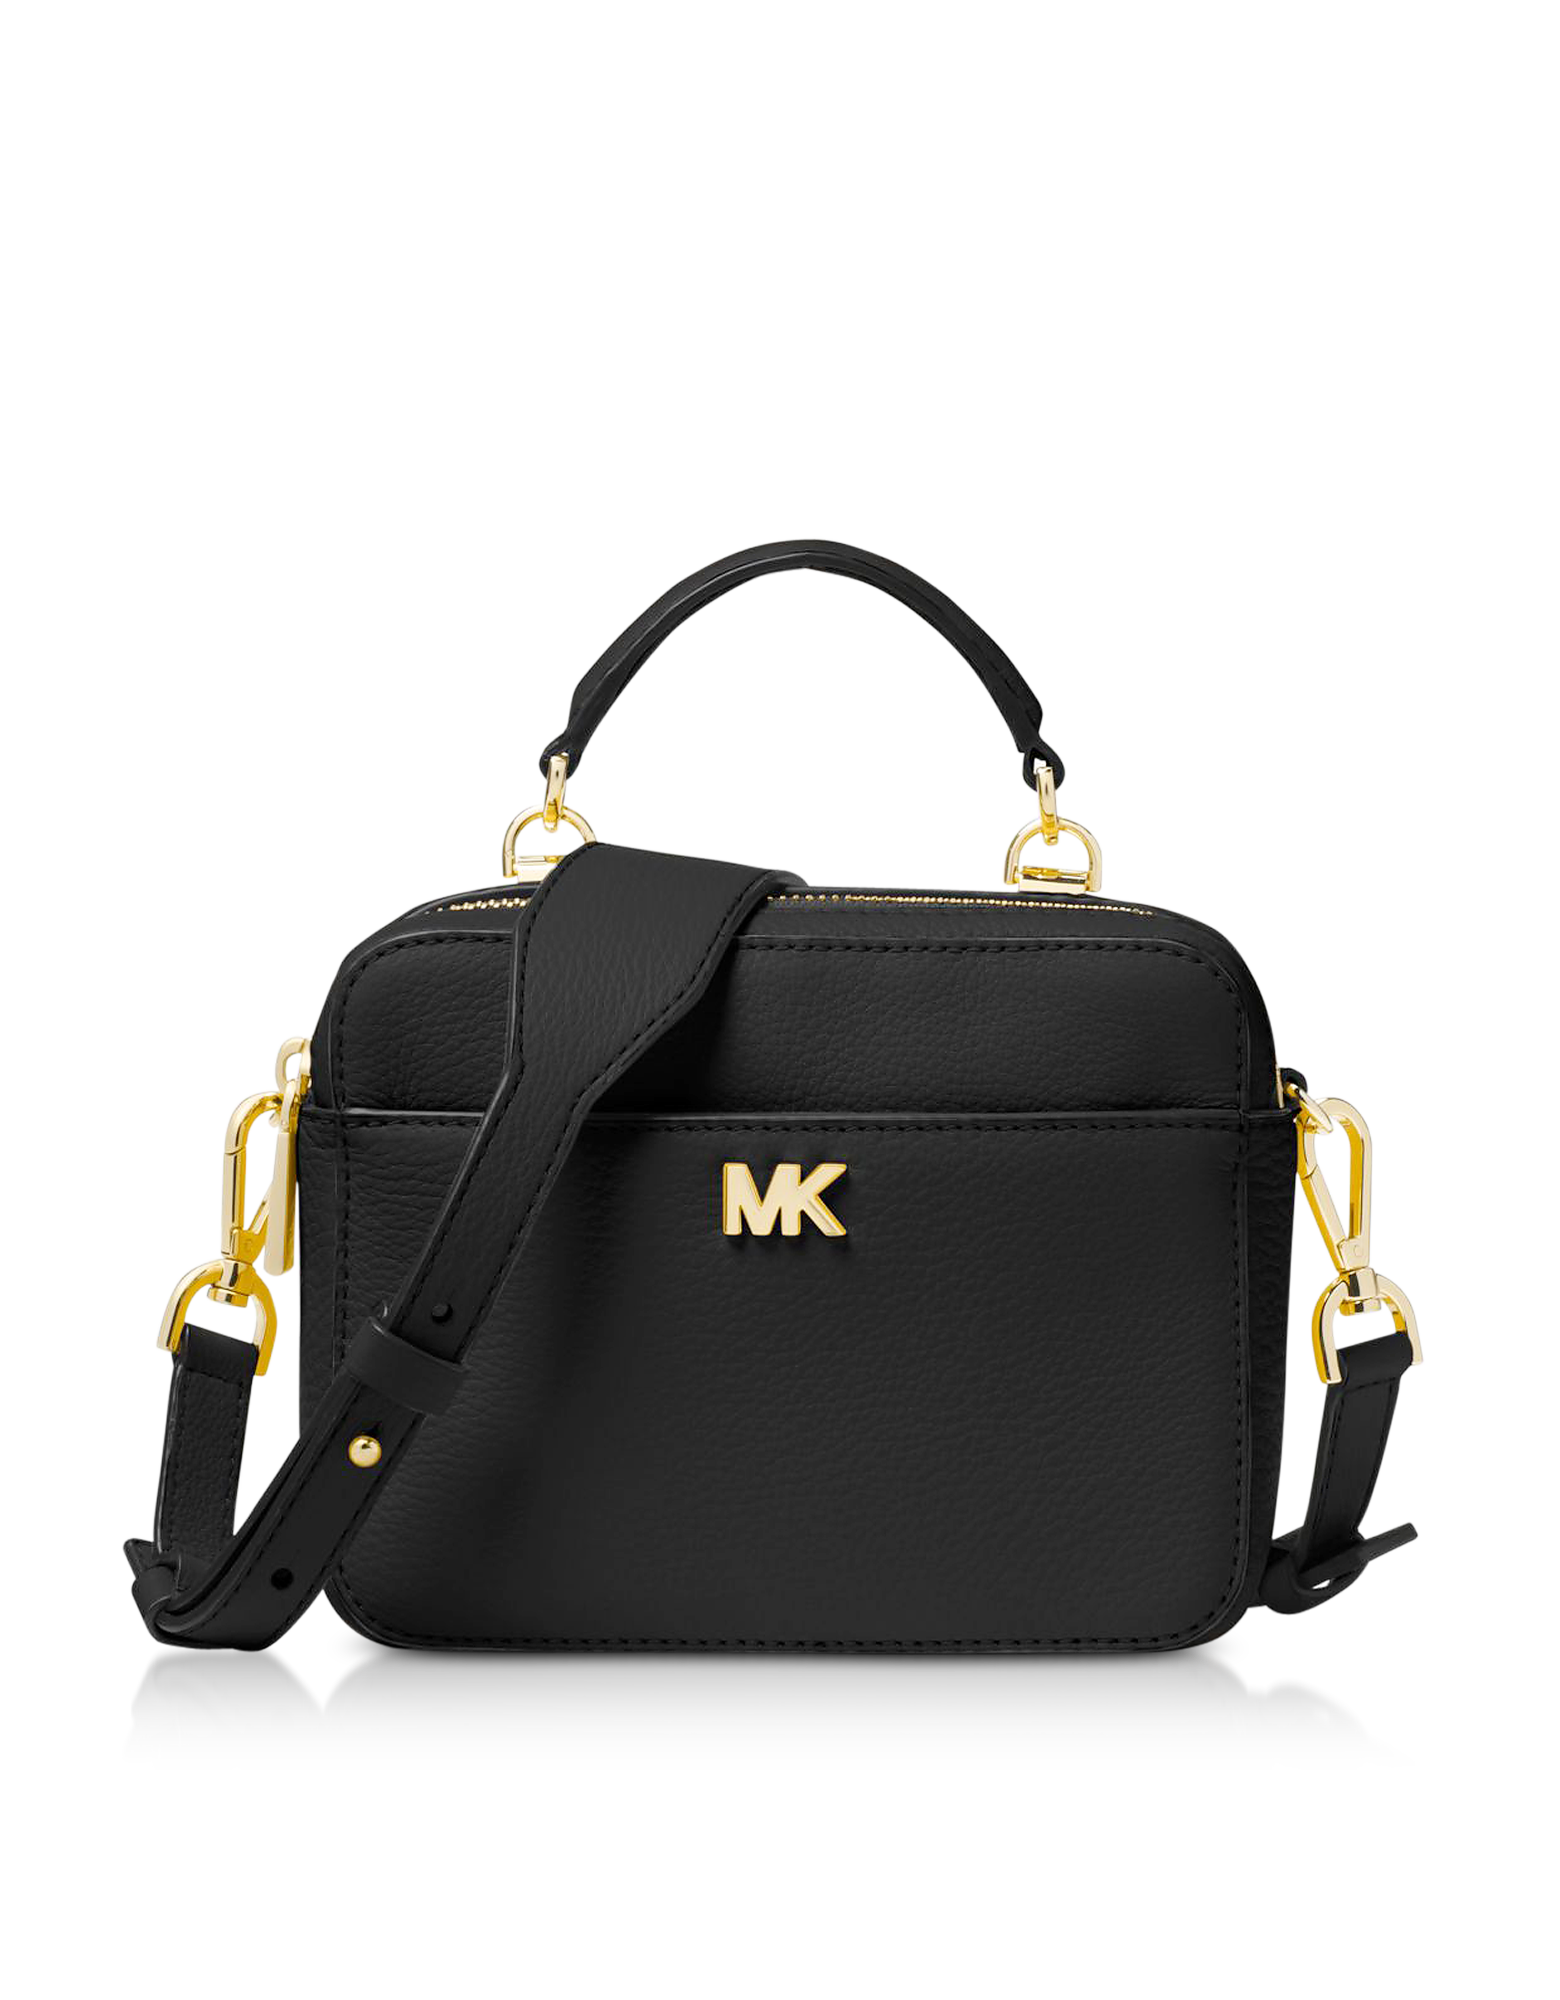 3e2f6c5a7a92e4 New Arrivals: Michael Kors - Mott Mini Pebbled Leather Crossbody ...